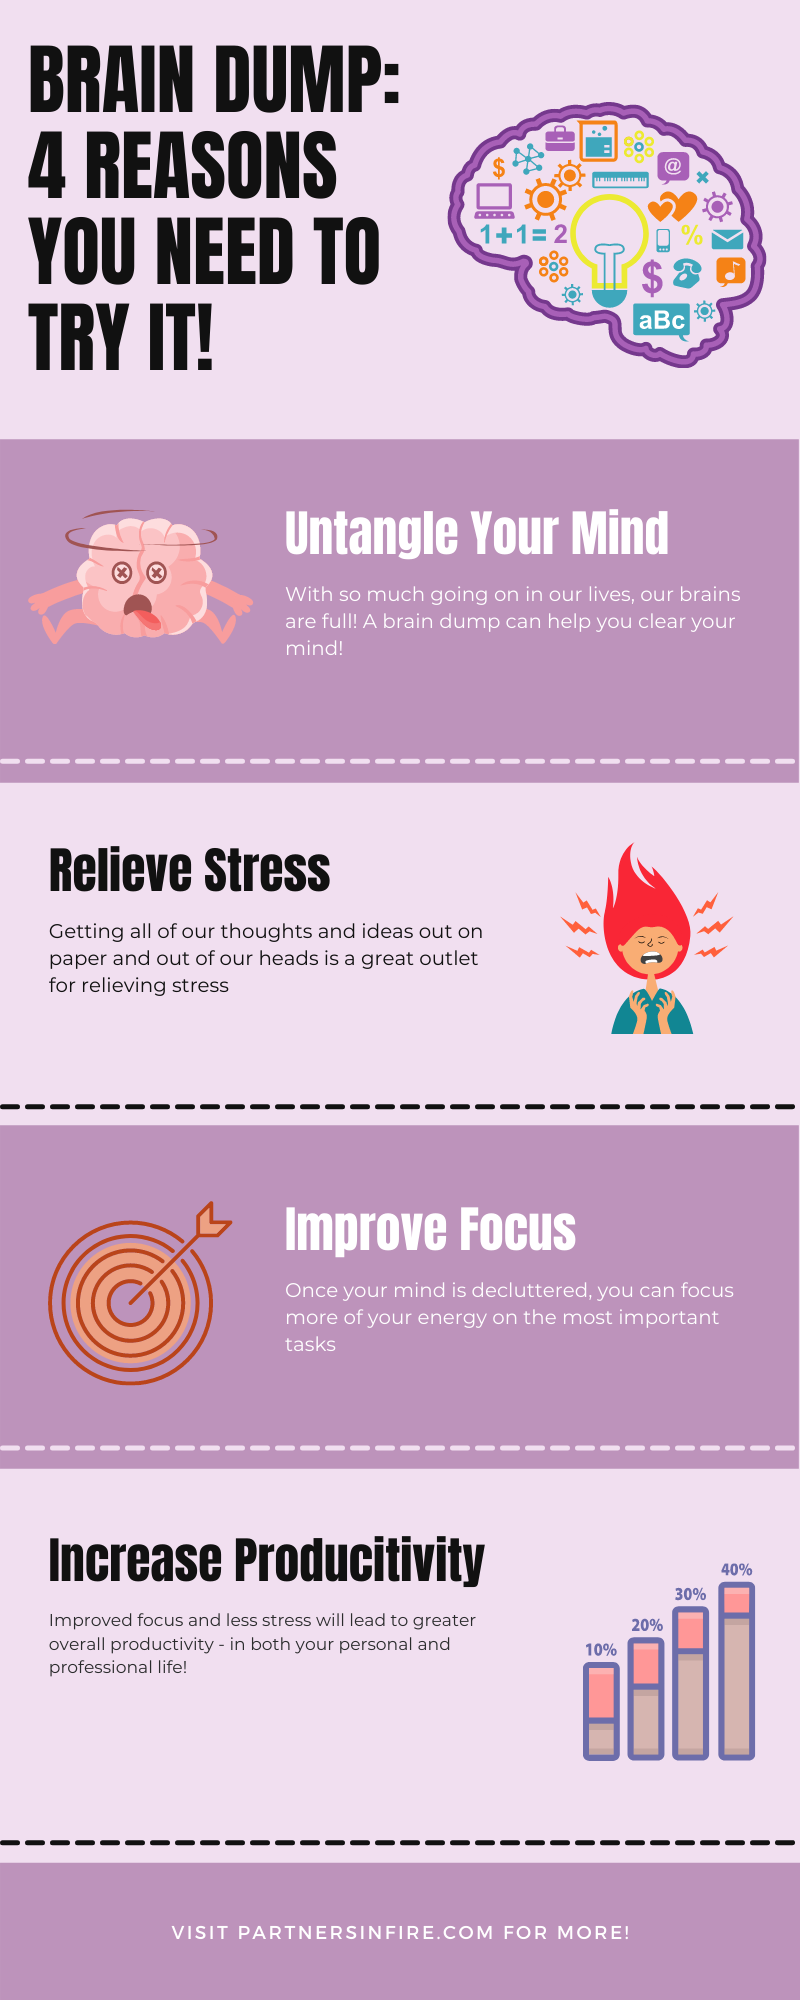 4 reasons to complete a brain dump